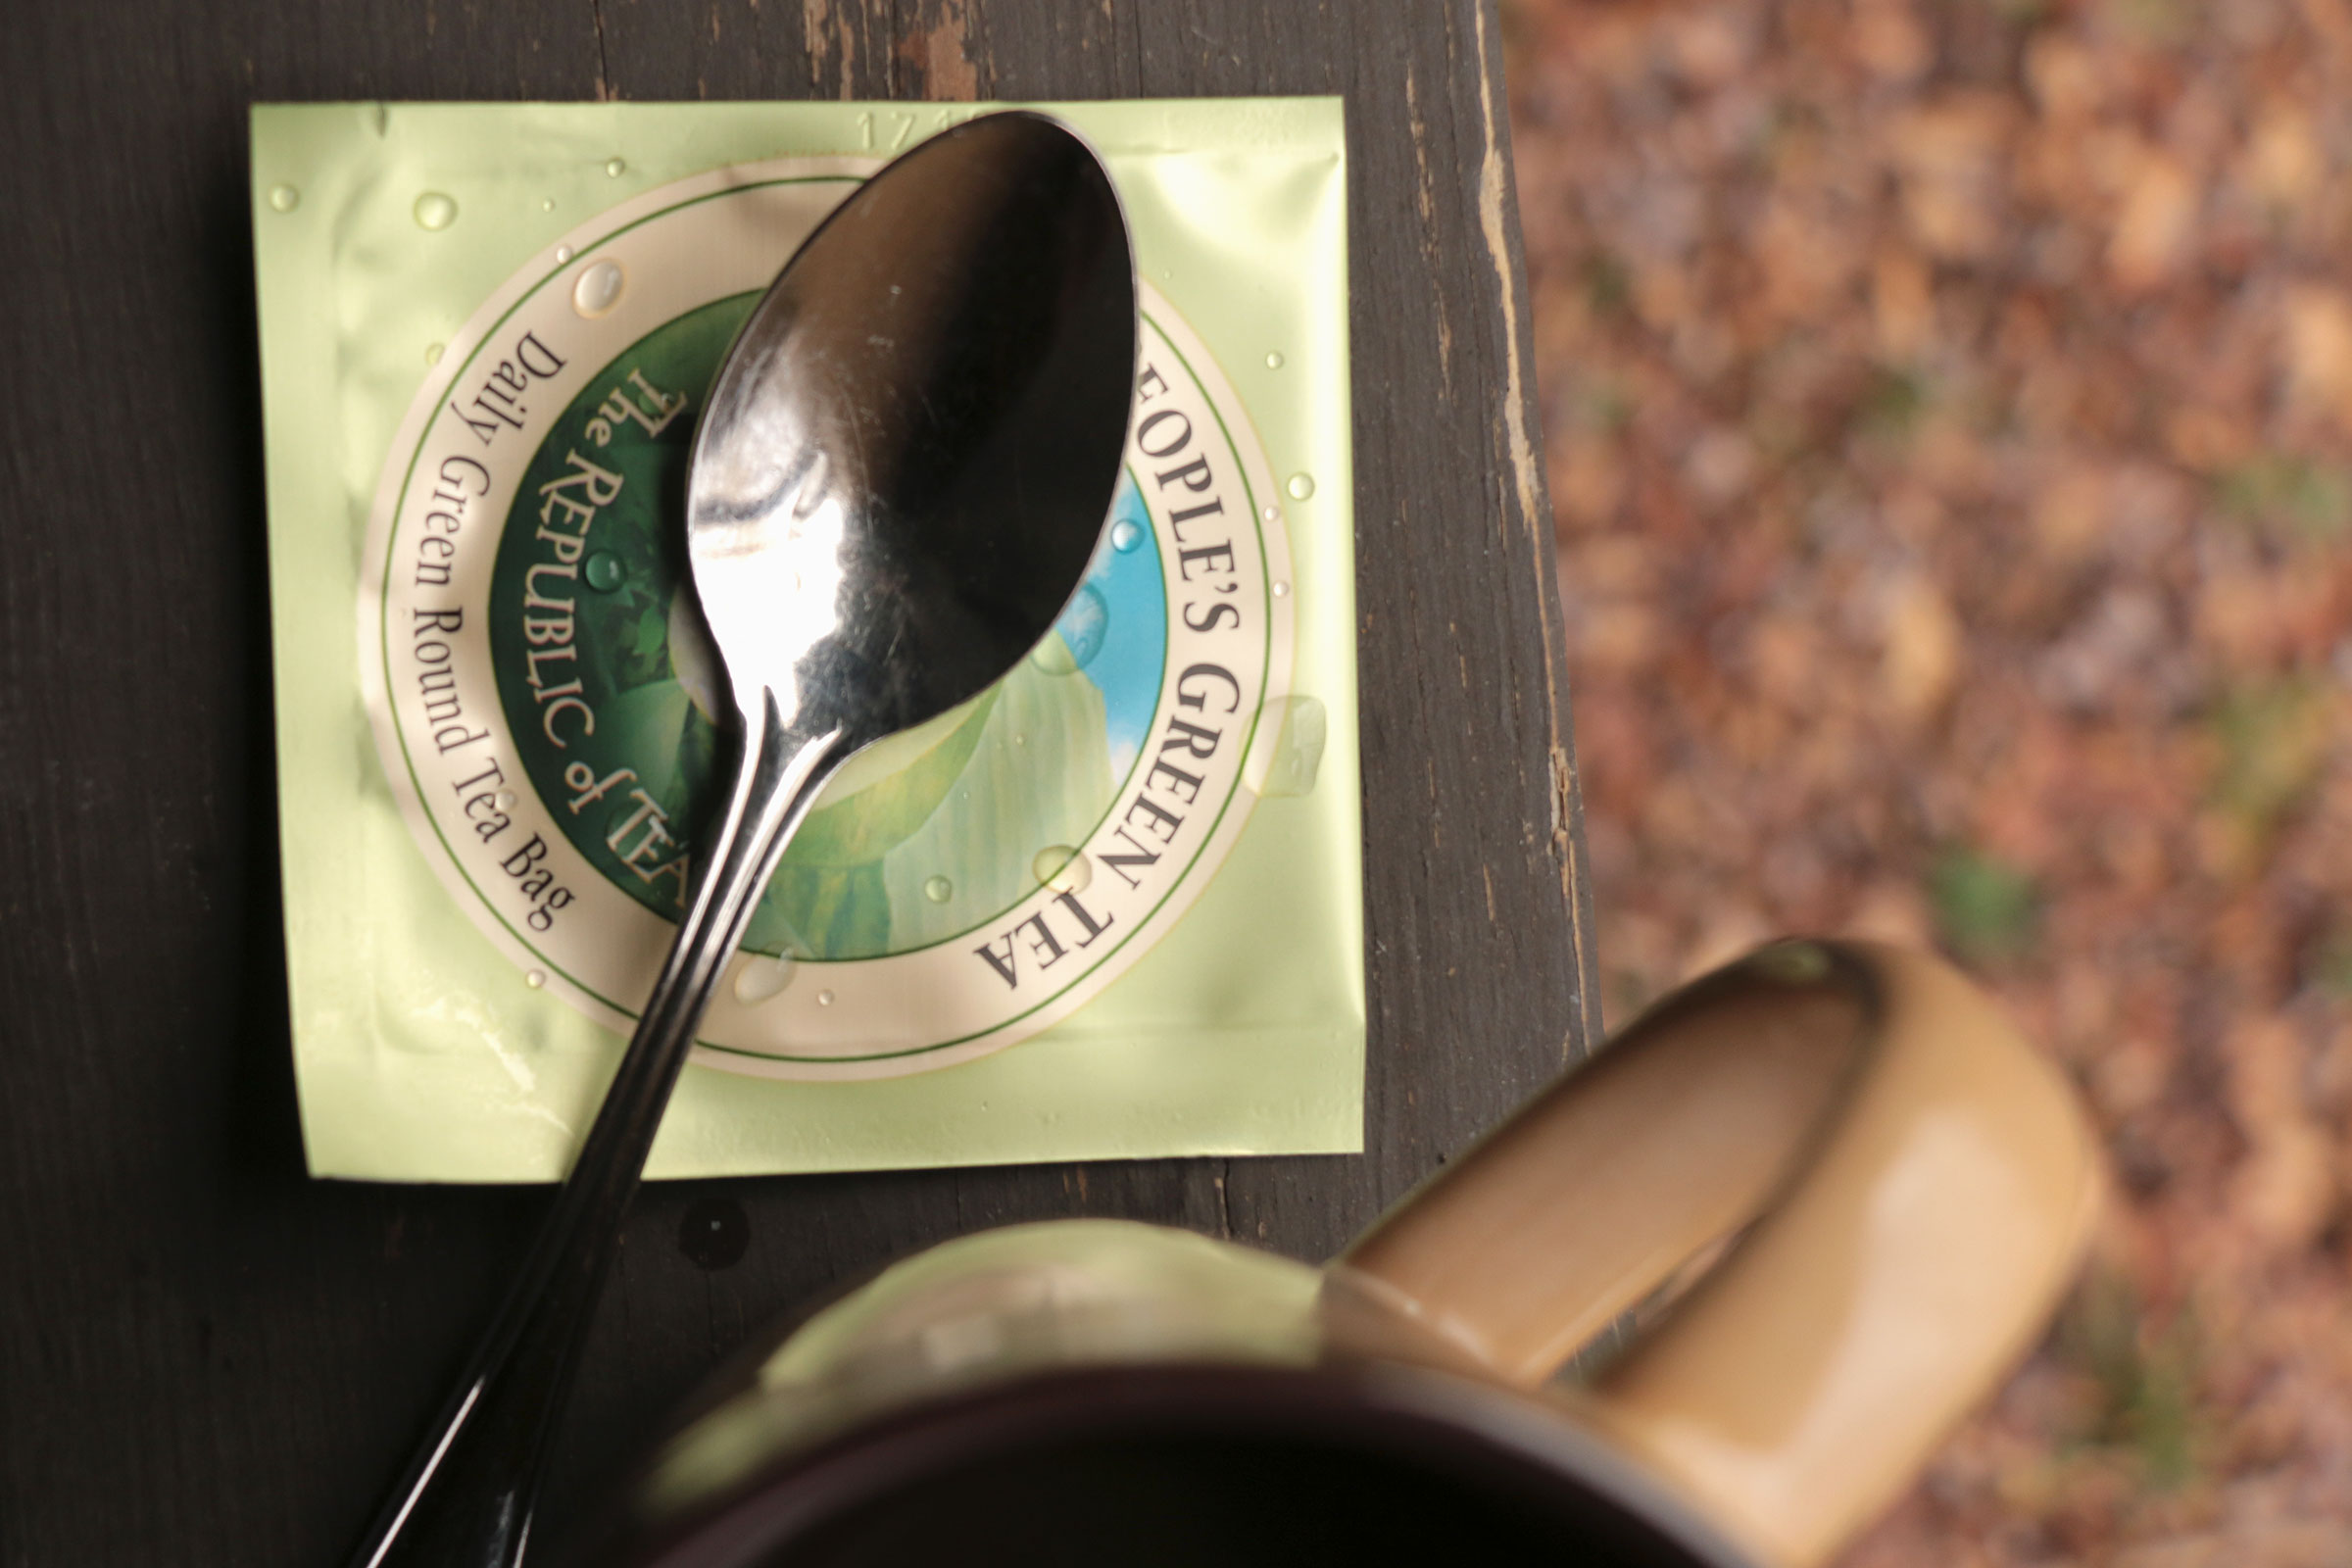 Teaspoon_7787.jpg